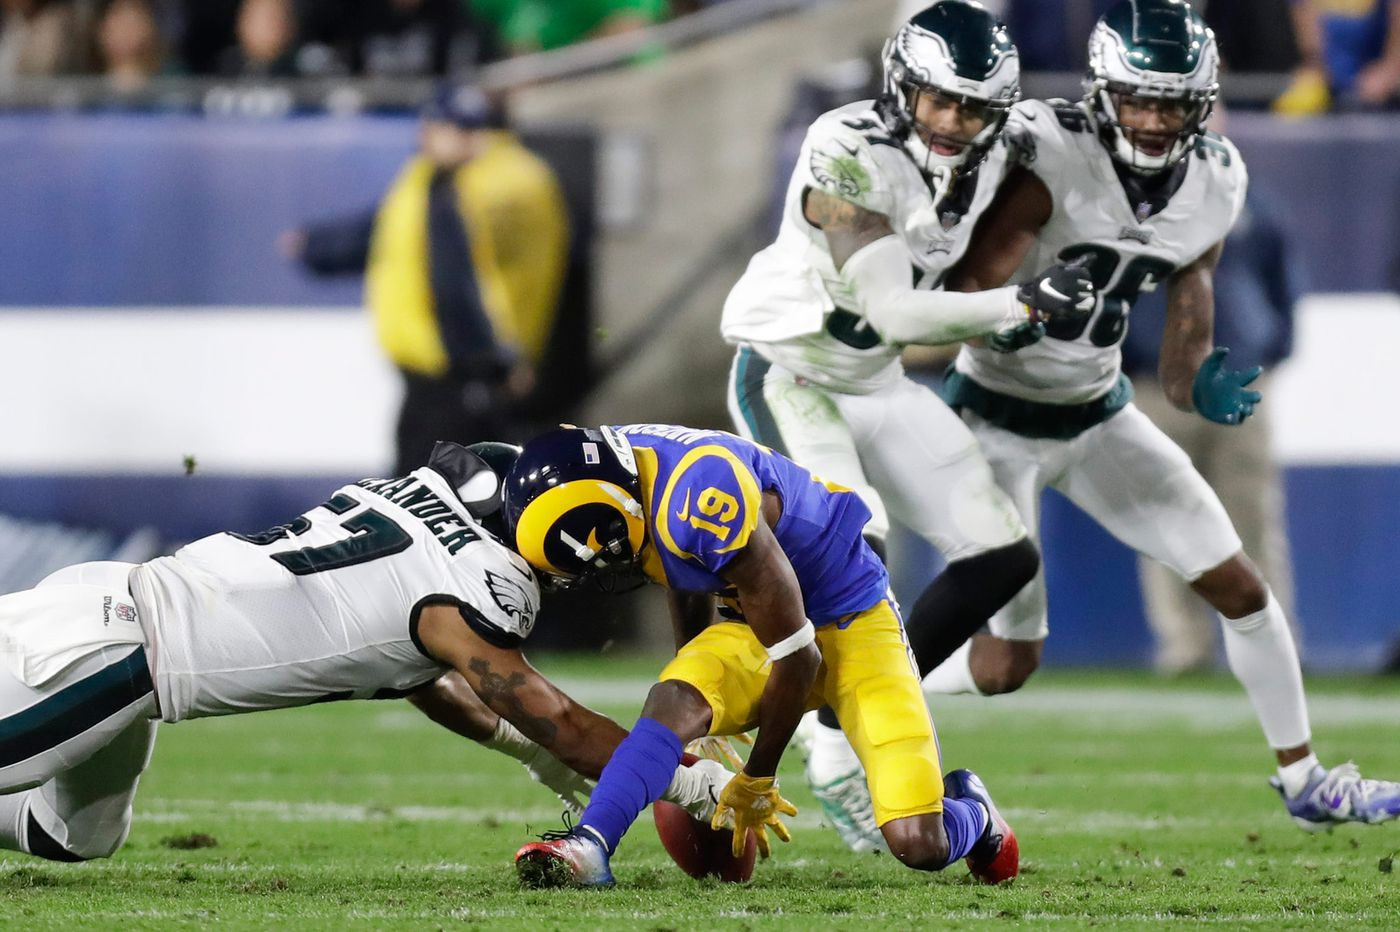 Eagles' special teams rose to the occasion in big win over the Rams